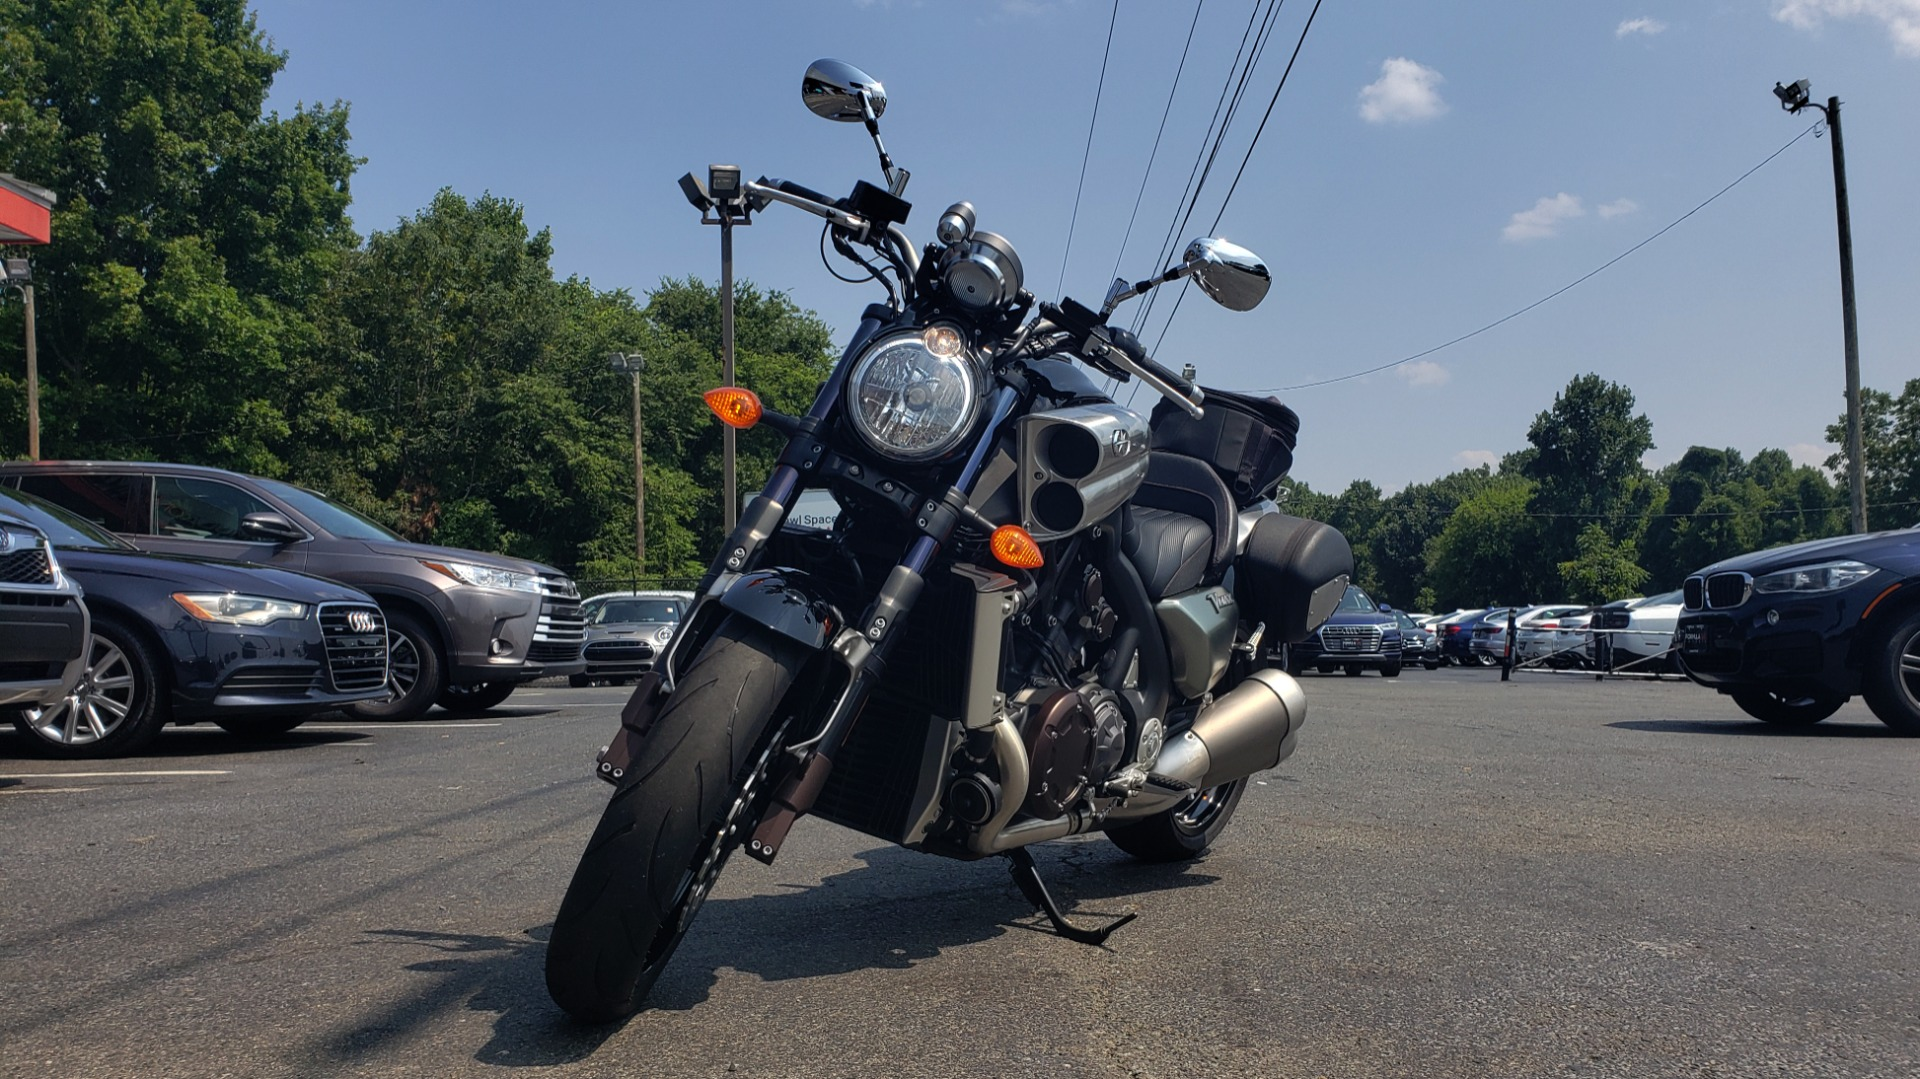 Used 2009 Yamaha V-MAX MOTORCYCLE / SPORT CRUISER / 18K MILES / SUPER CLEAN! for sale $9,500 at Formula Imports in Charlotte NC 28227 2